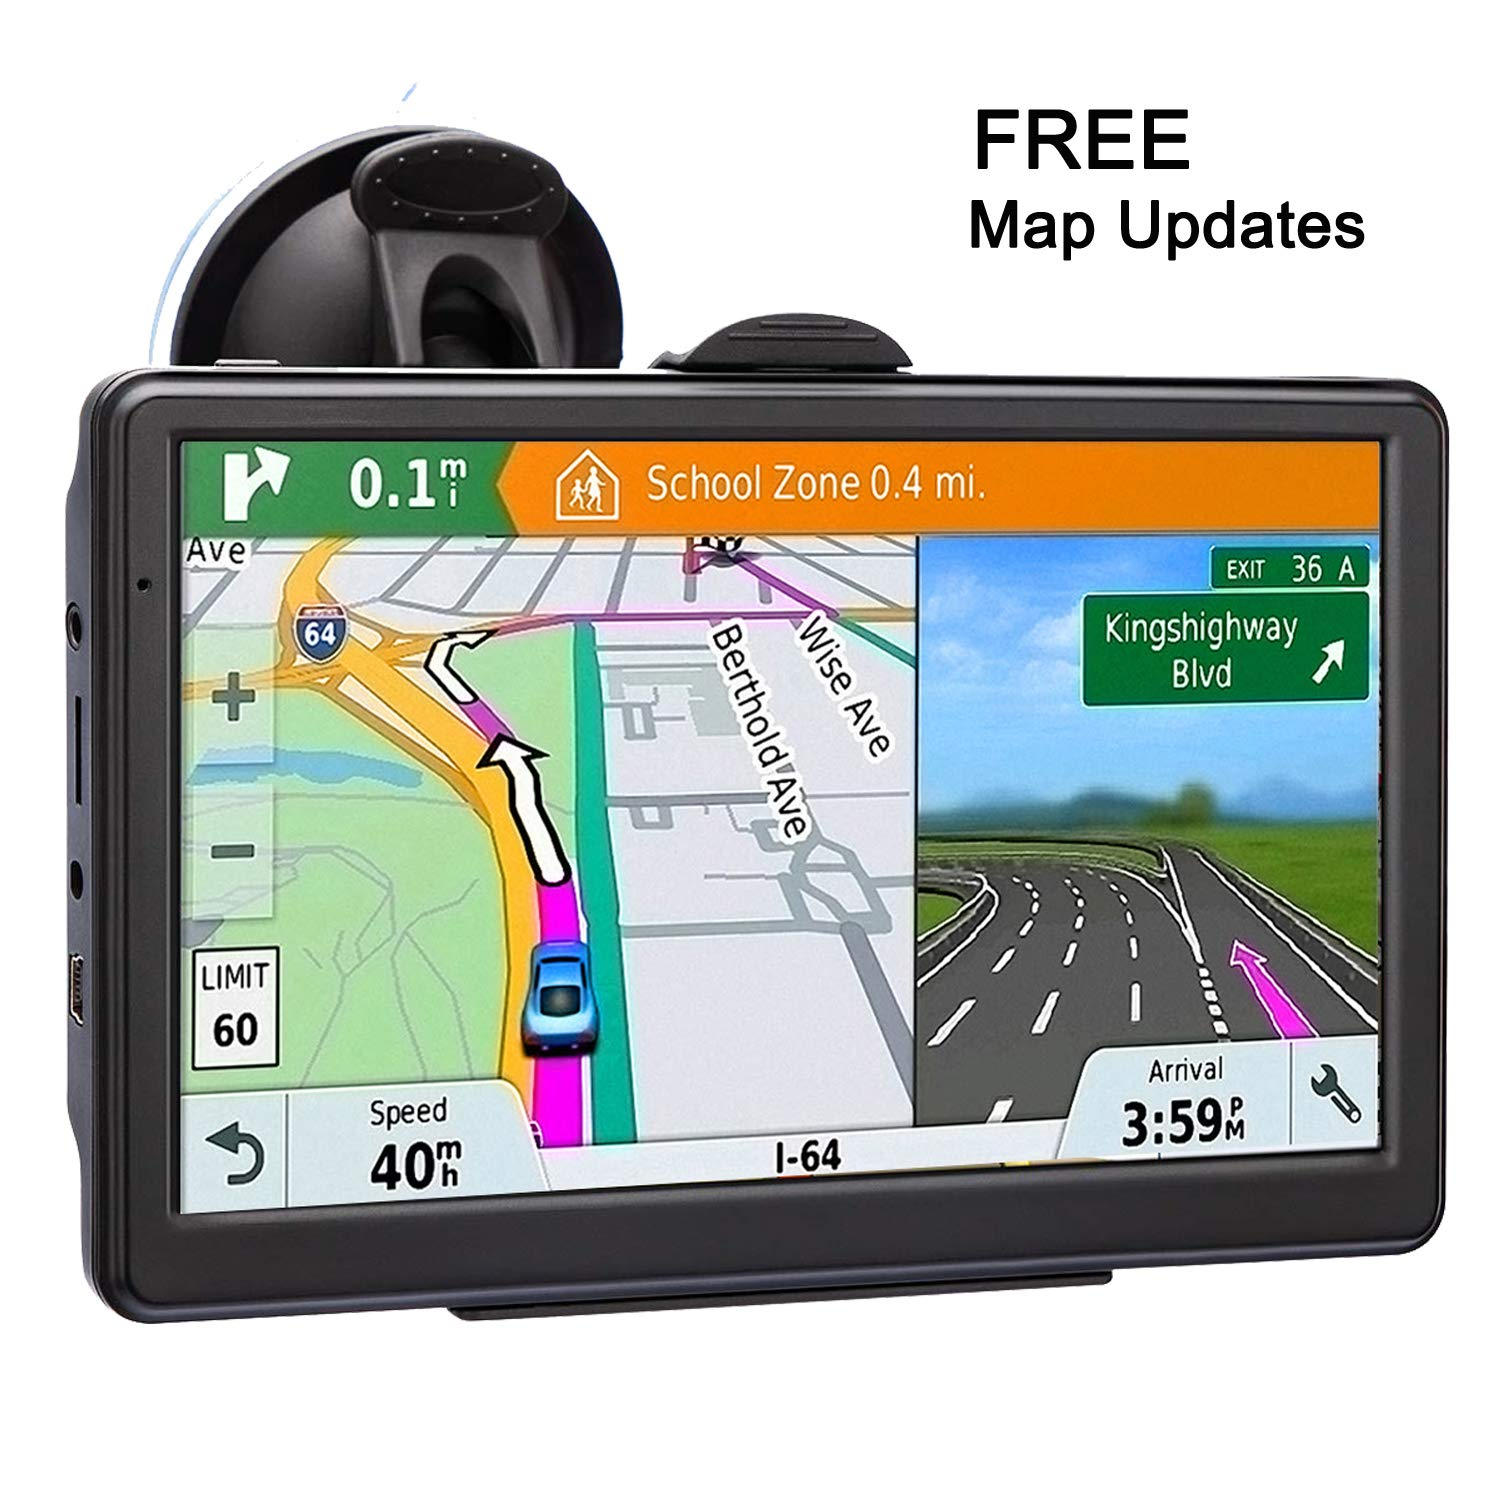 GPS Navigation for Car 7 Inch Car GPS Navigation System 8GB Voice Navigation with Lifetime Map Update Fast Location, Voice Trun-by-Turn Route Guidance, Speed Limit Reminder by NAVRUF